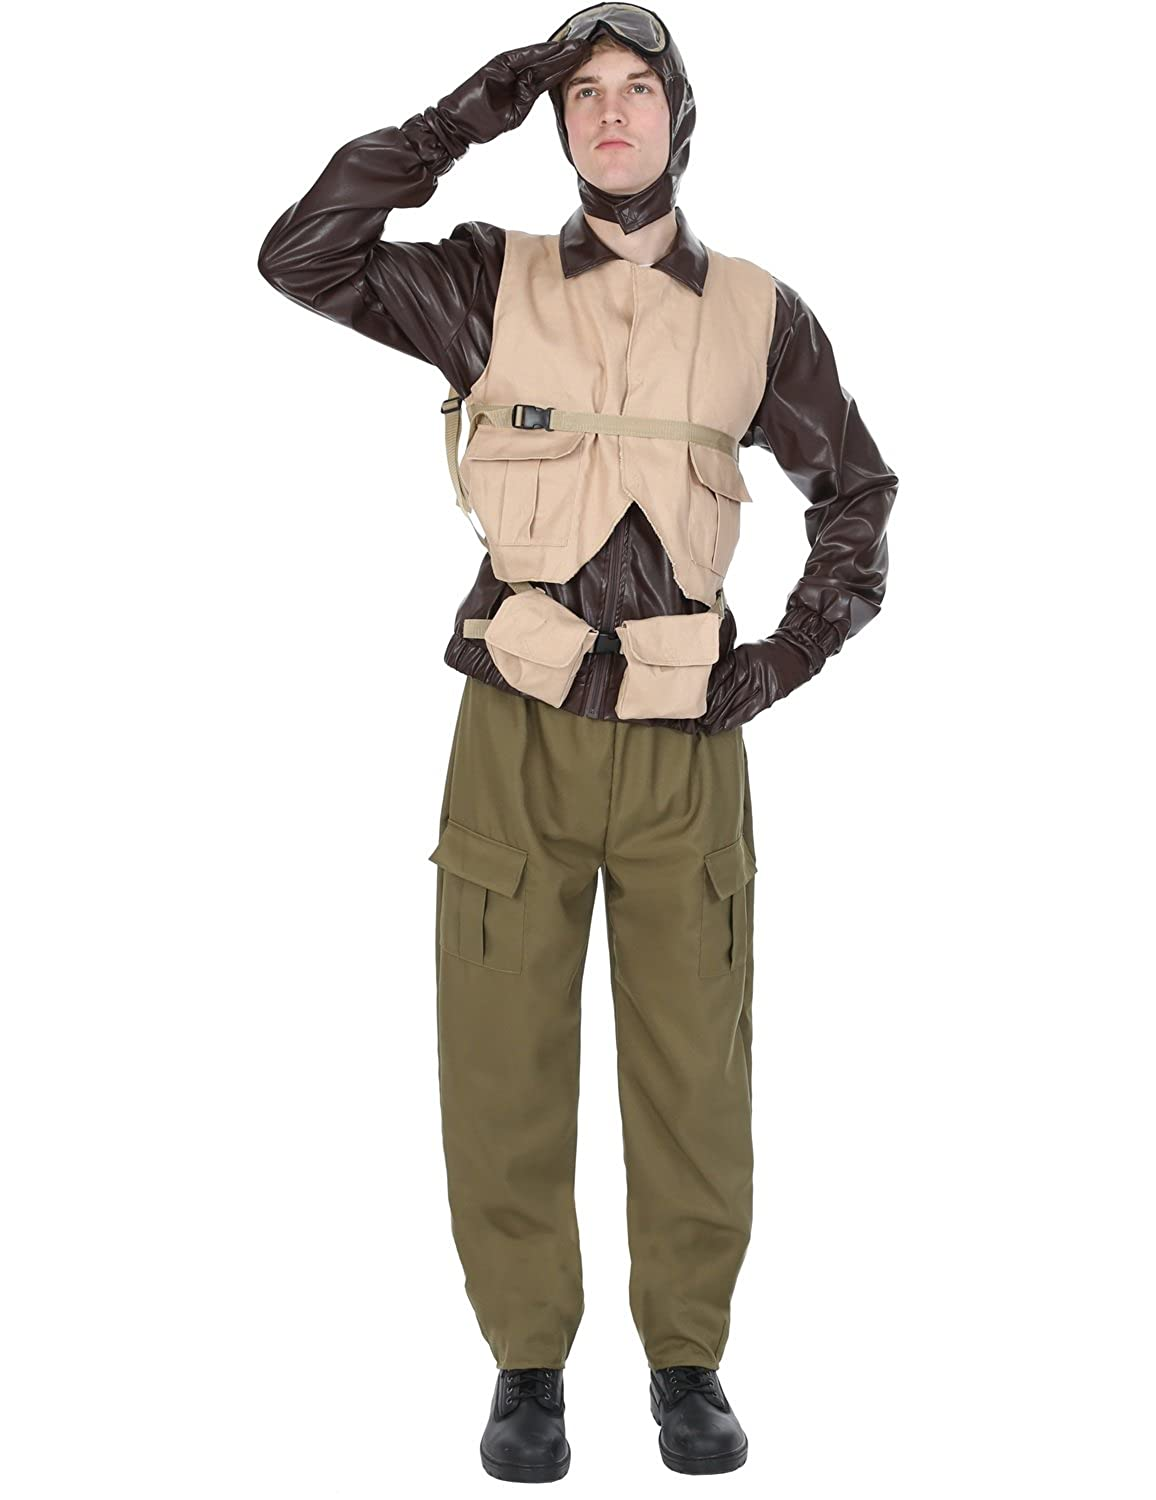 1940s Dresses and Clothing UK | 40s Shoes UK Orion Costumes Mens World War II WW2 Fighter Pilot 1940s Aviator Fancy Dress Costume £26.11 AT vintagedancer.com